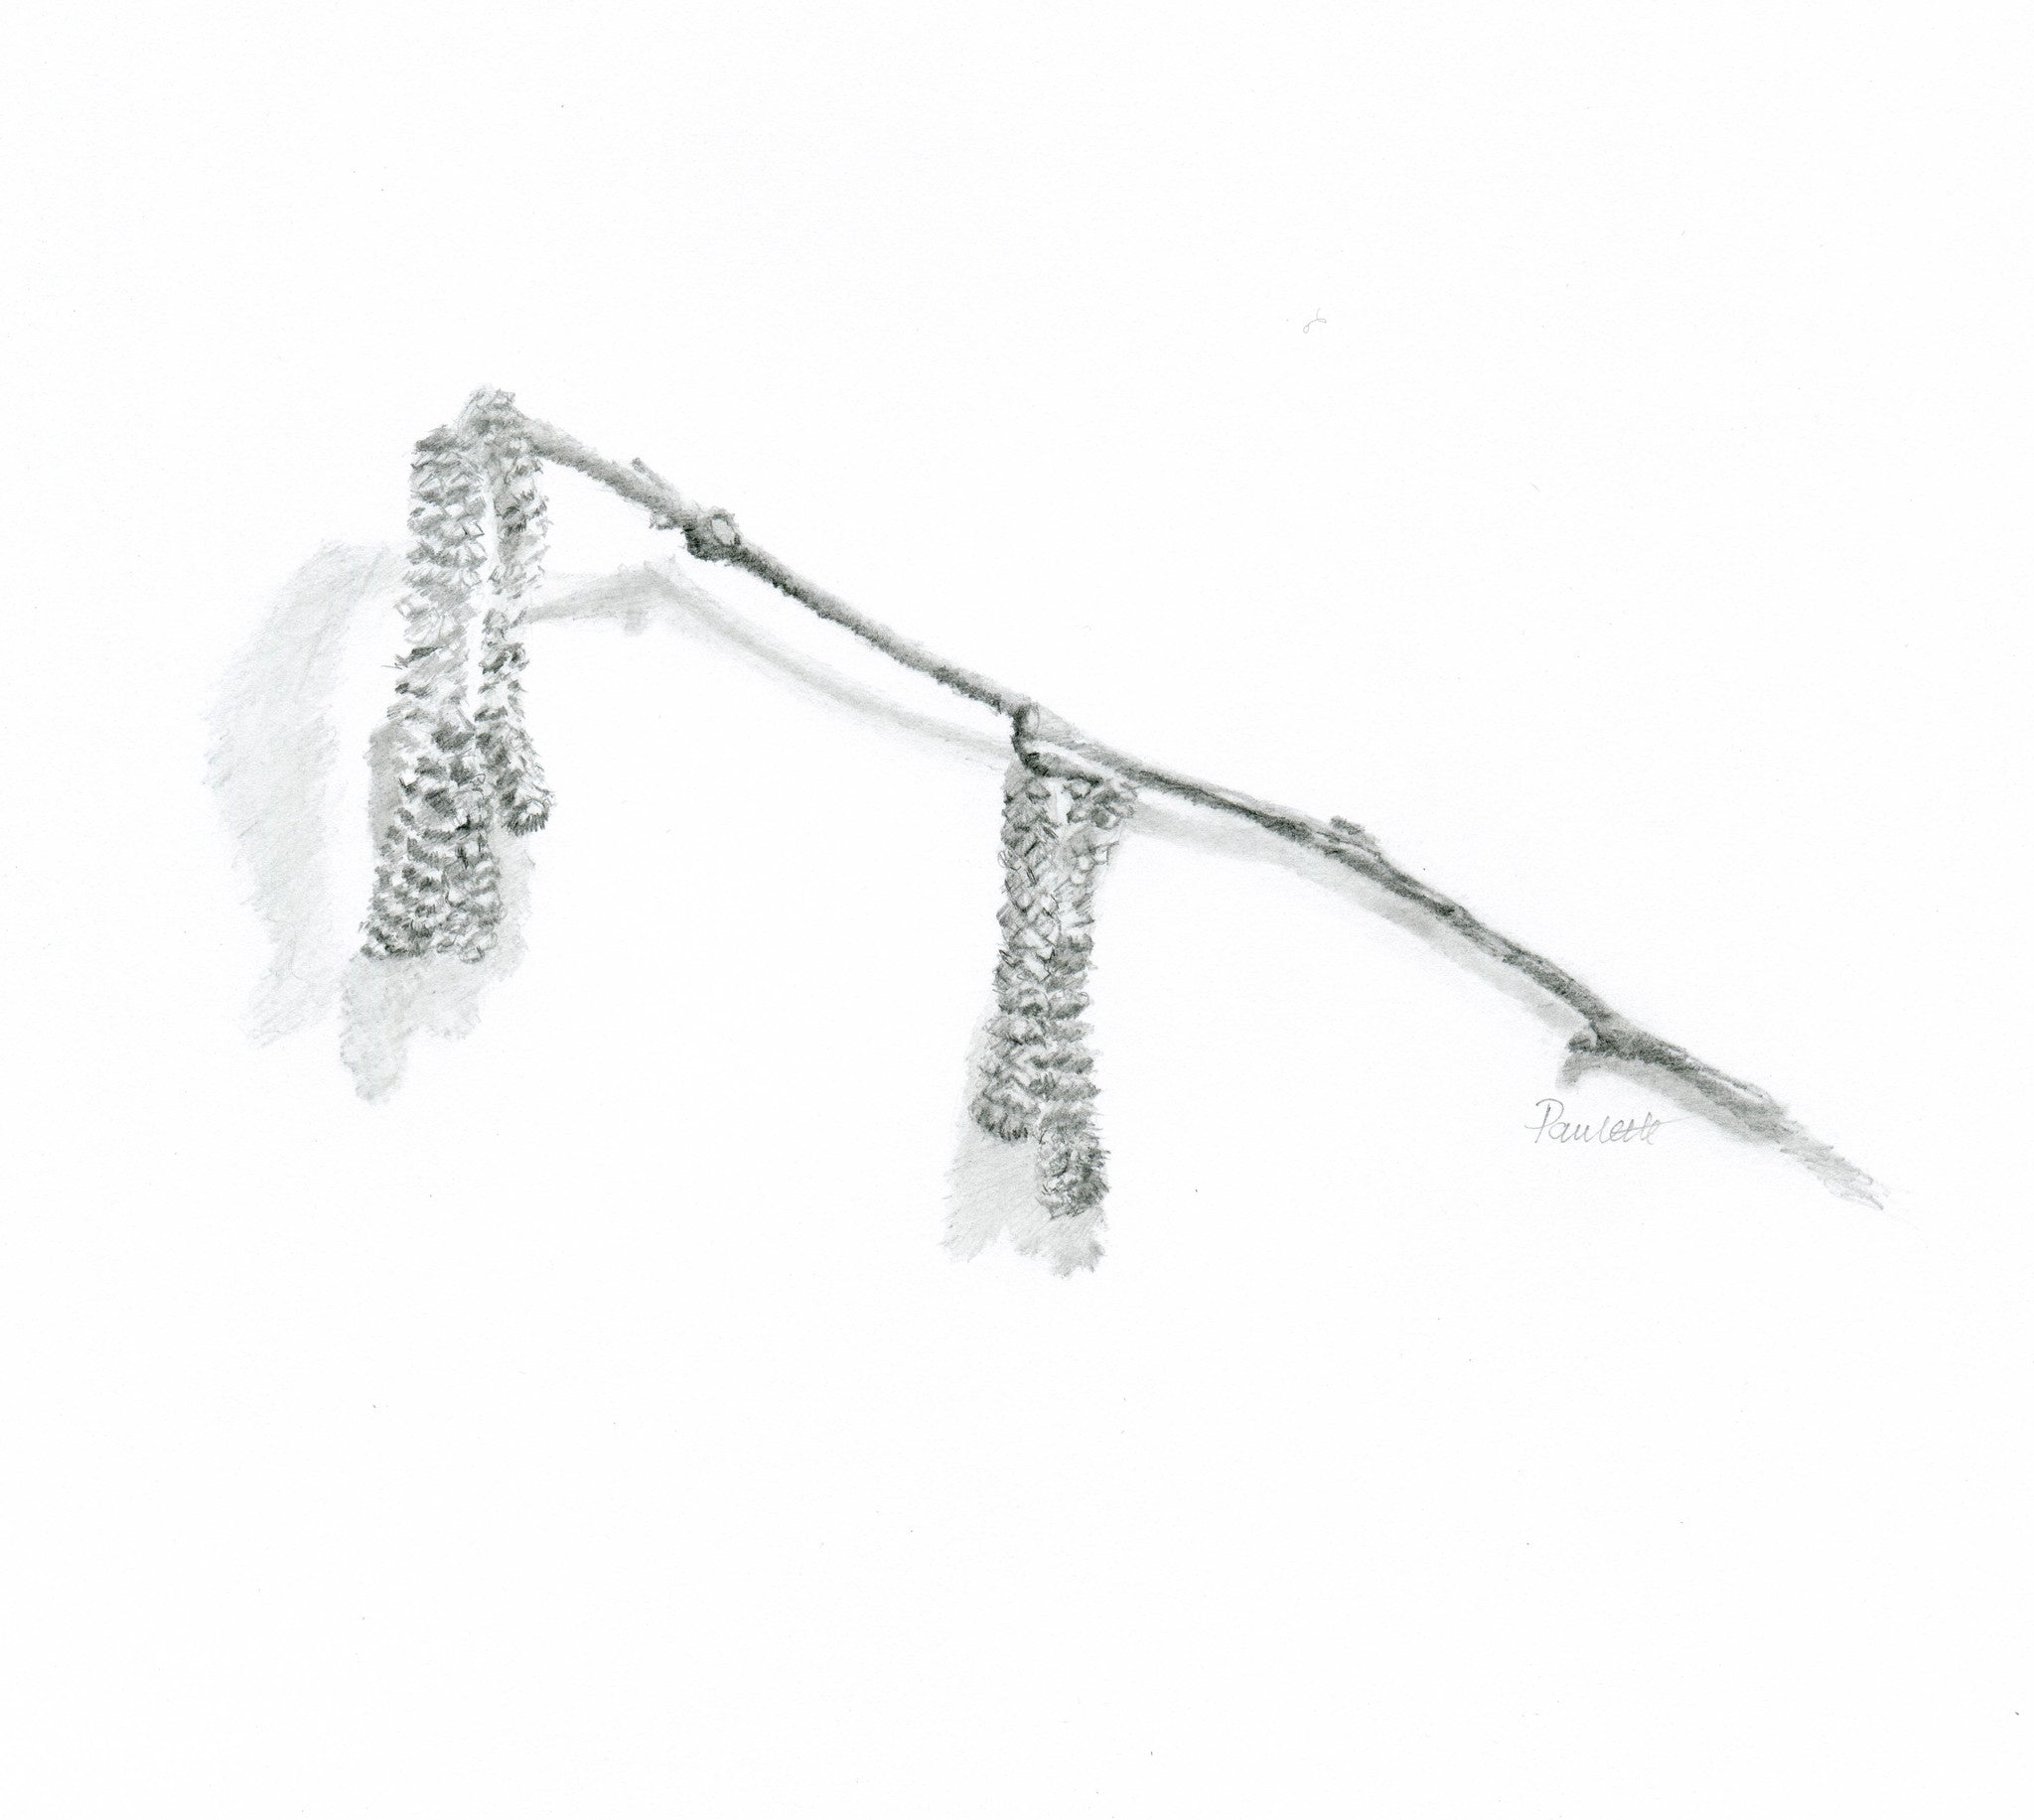 graphite pencil drawing of catkins